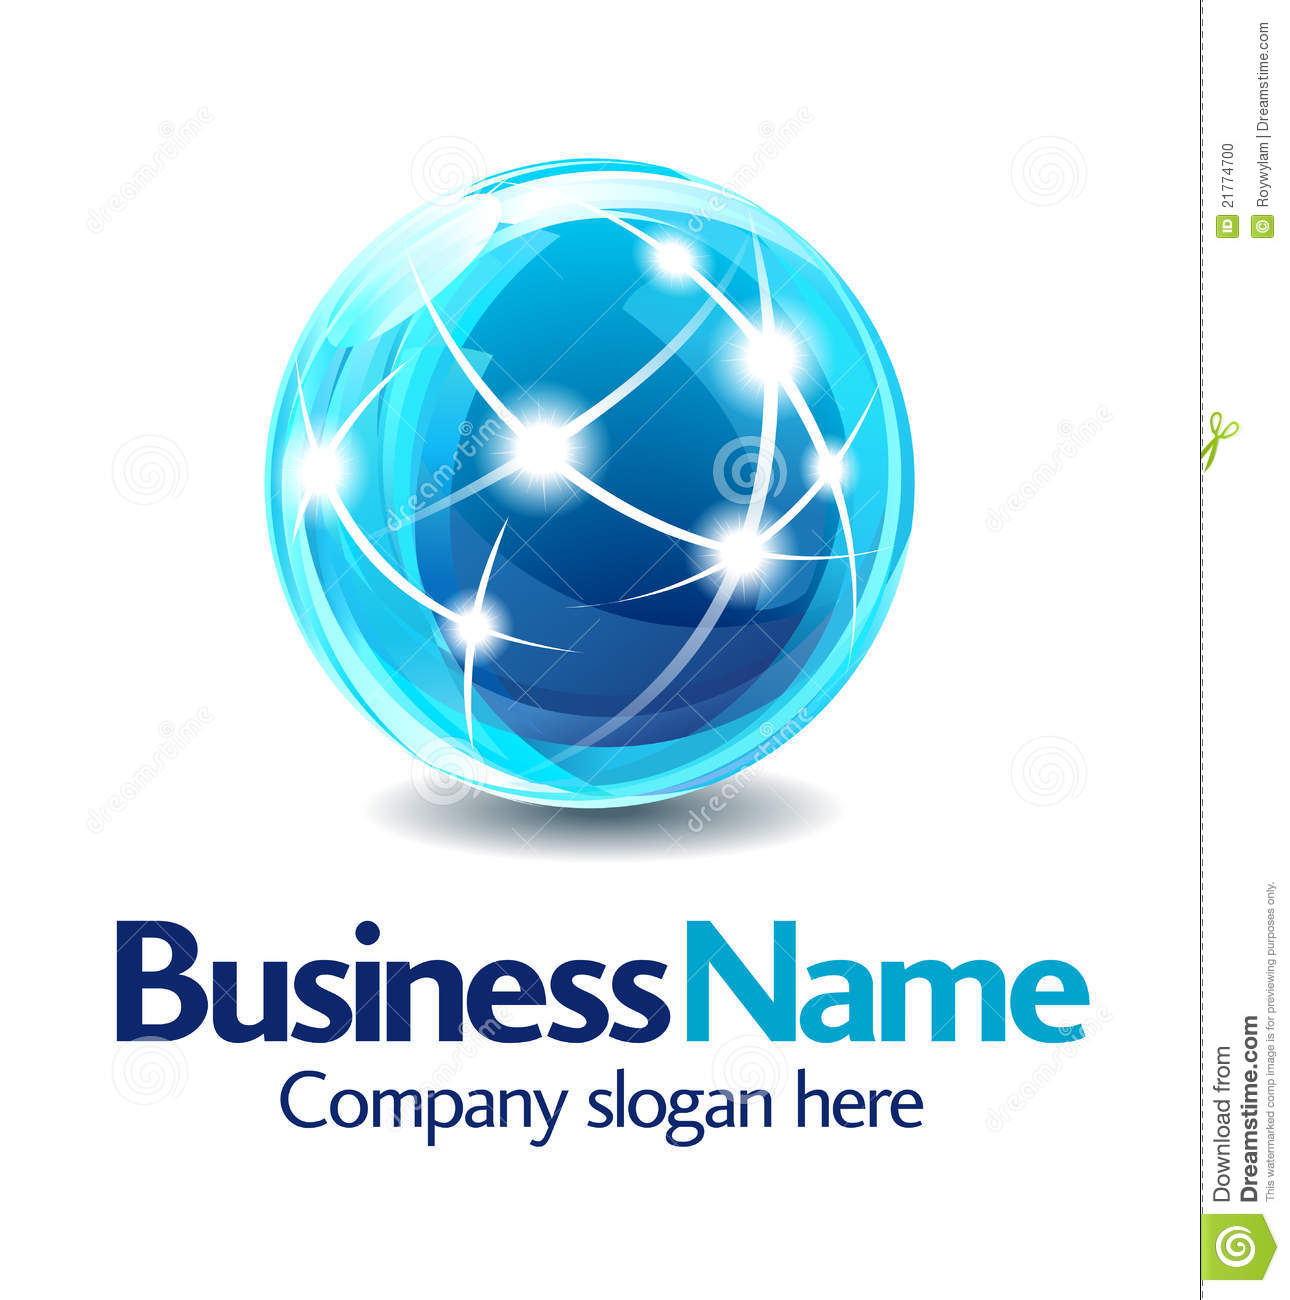 Business logo design 3d stock vector image of corporation Business logo design company